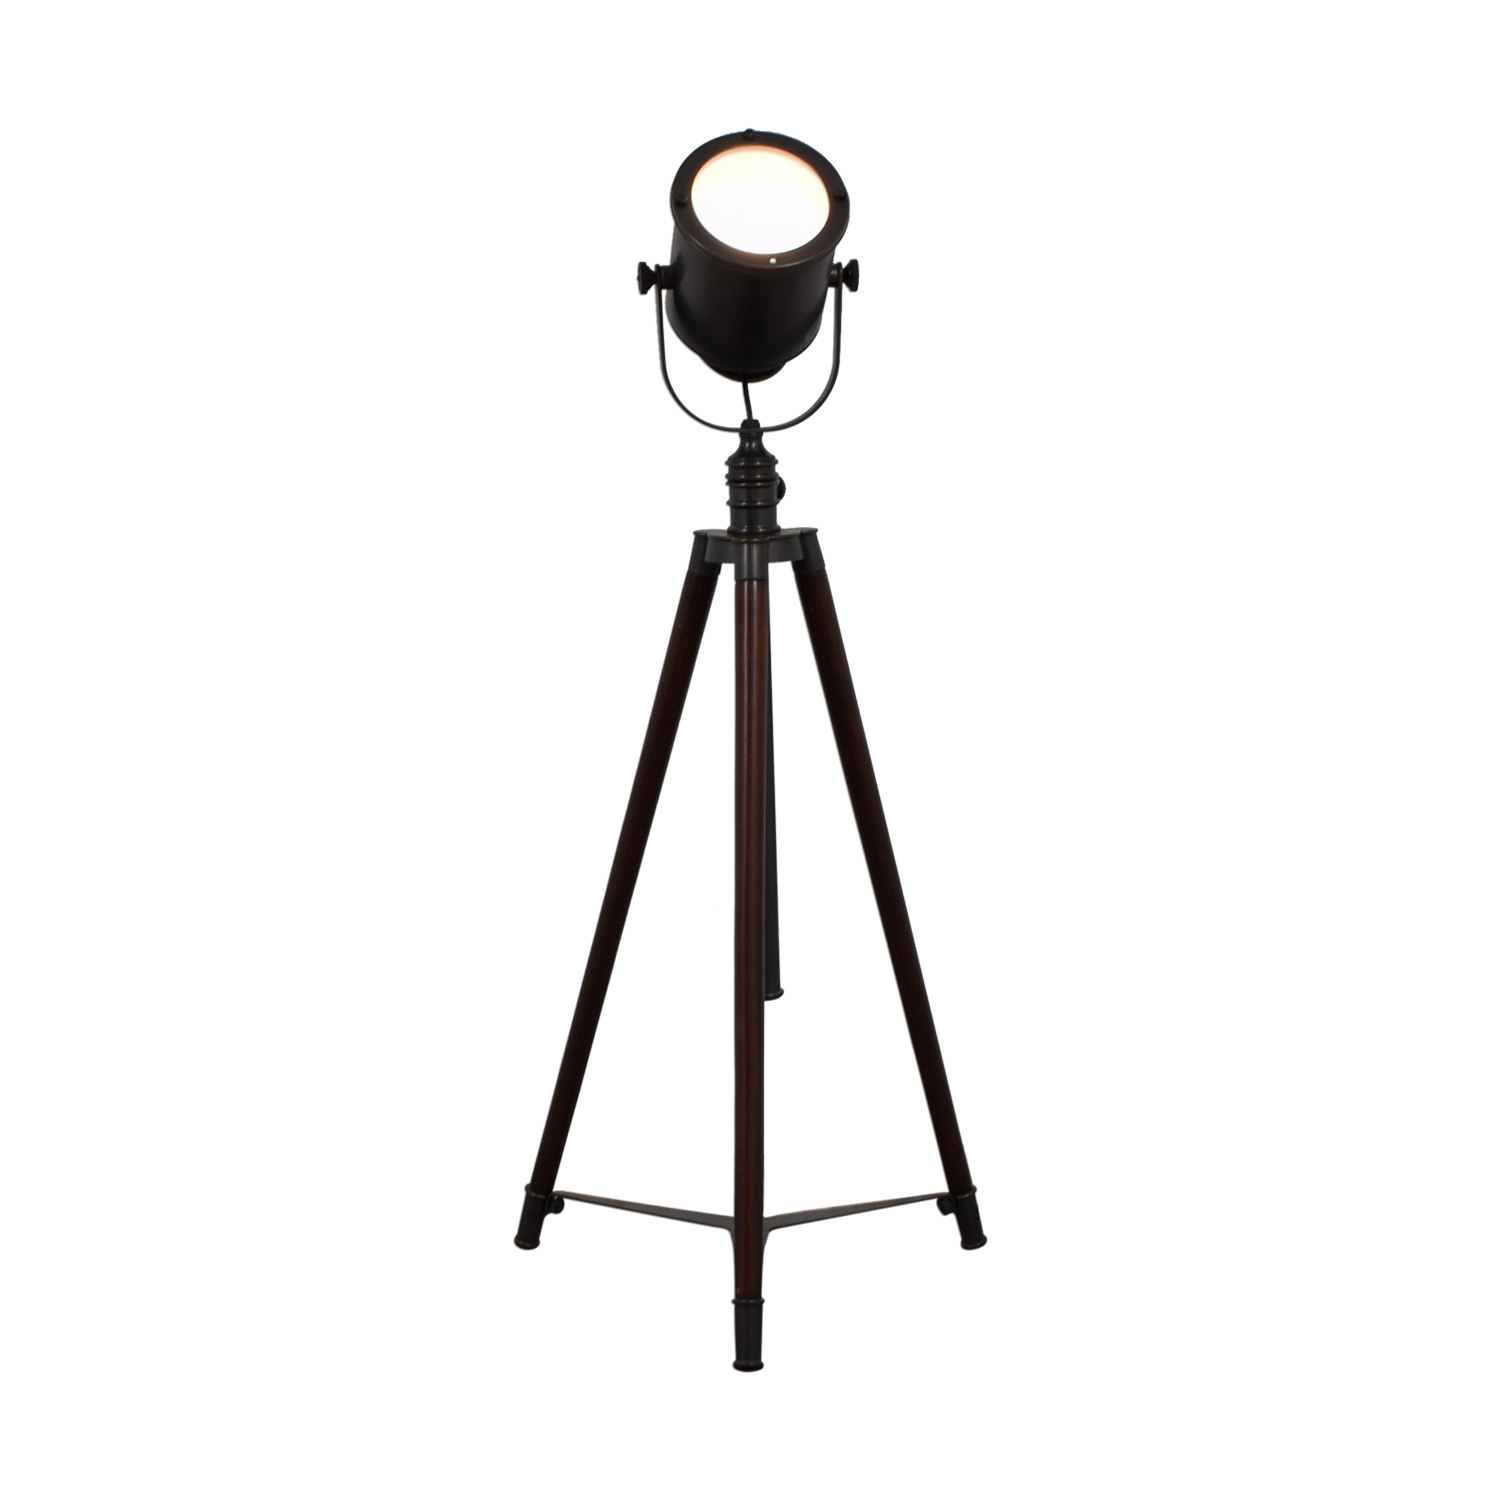 Pottery Barn Pottery Barn Spotlight Tripod Floor Lamp coupon